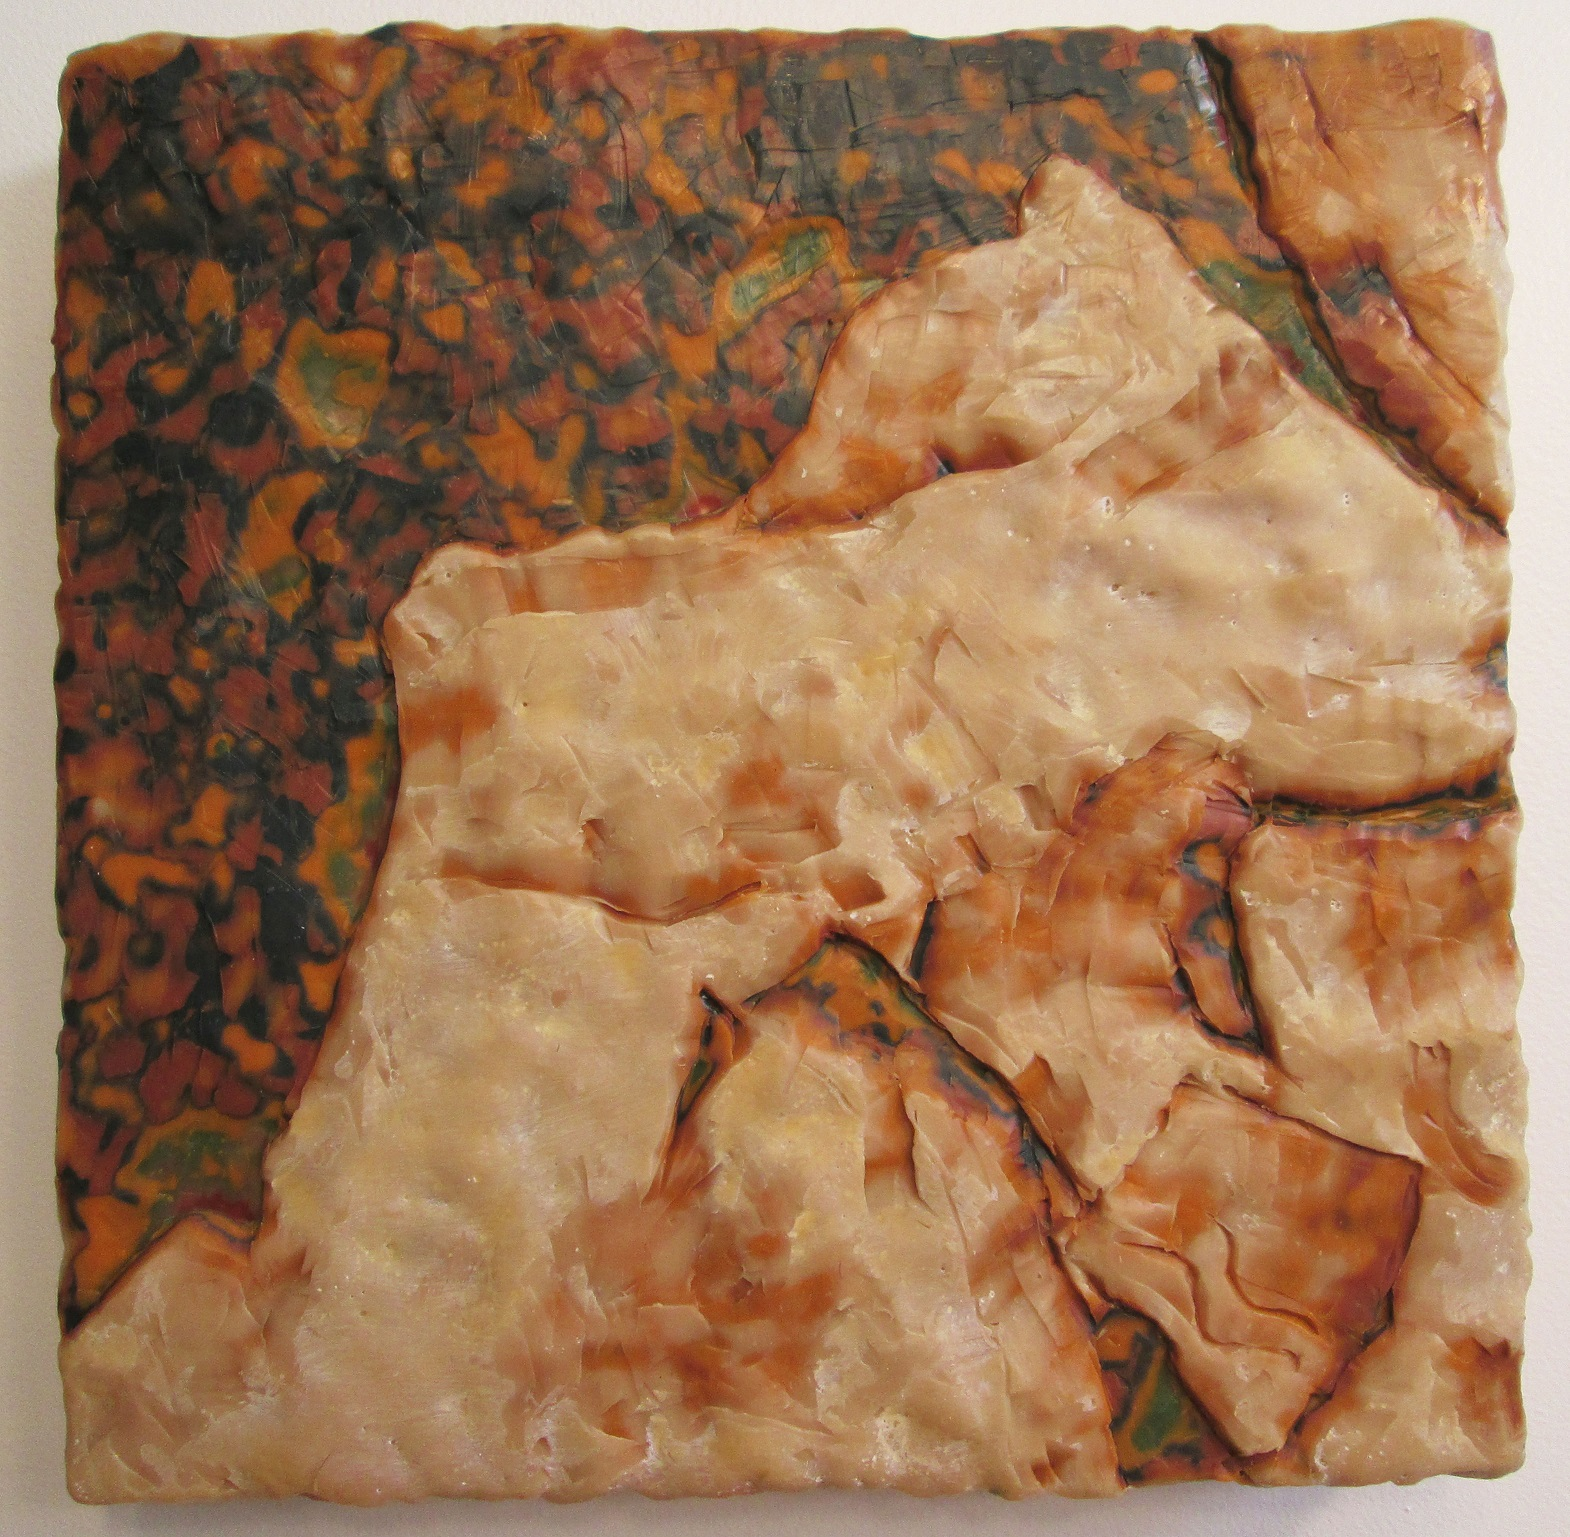 "Excavation #6; Layered and carved encaustic with oils on wooden panel; 12""h x 12""w x 2.25""d; 2001"